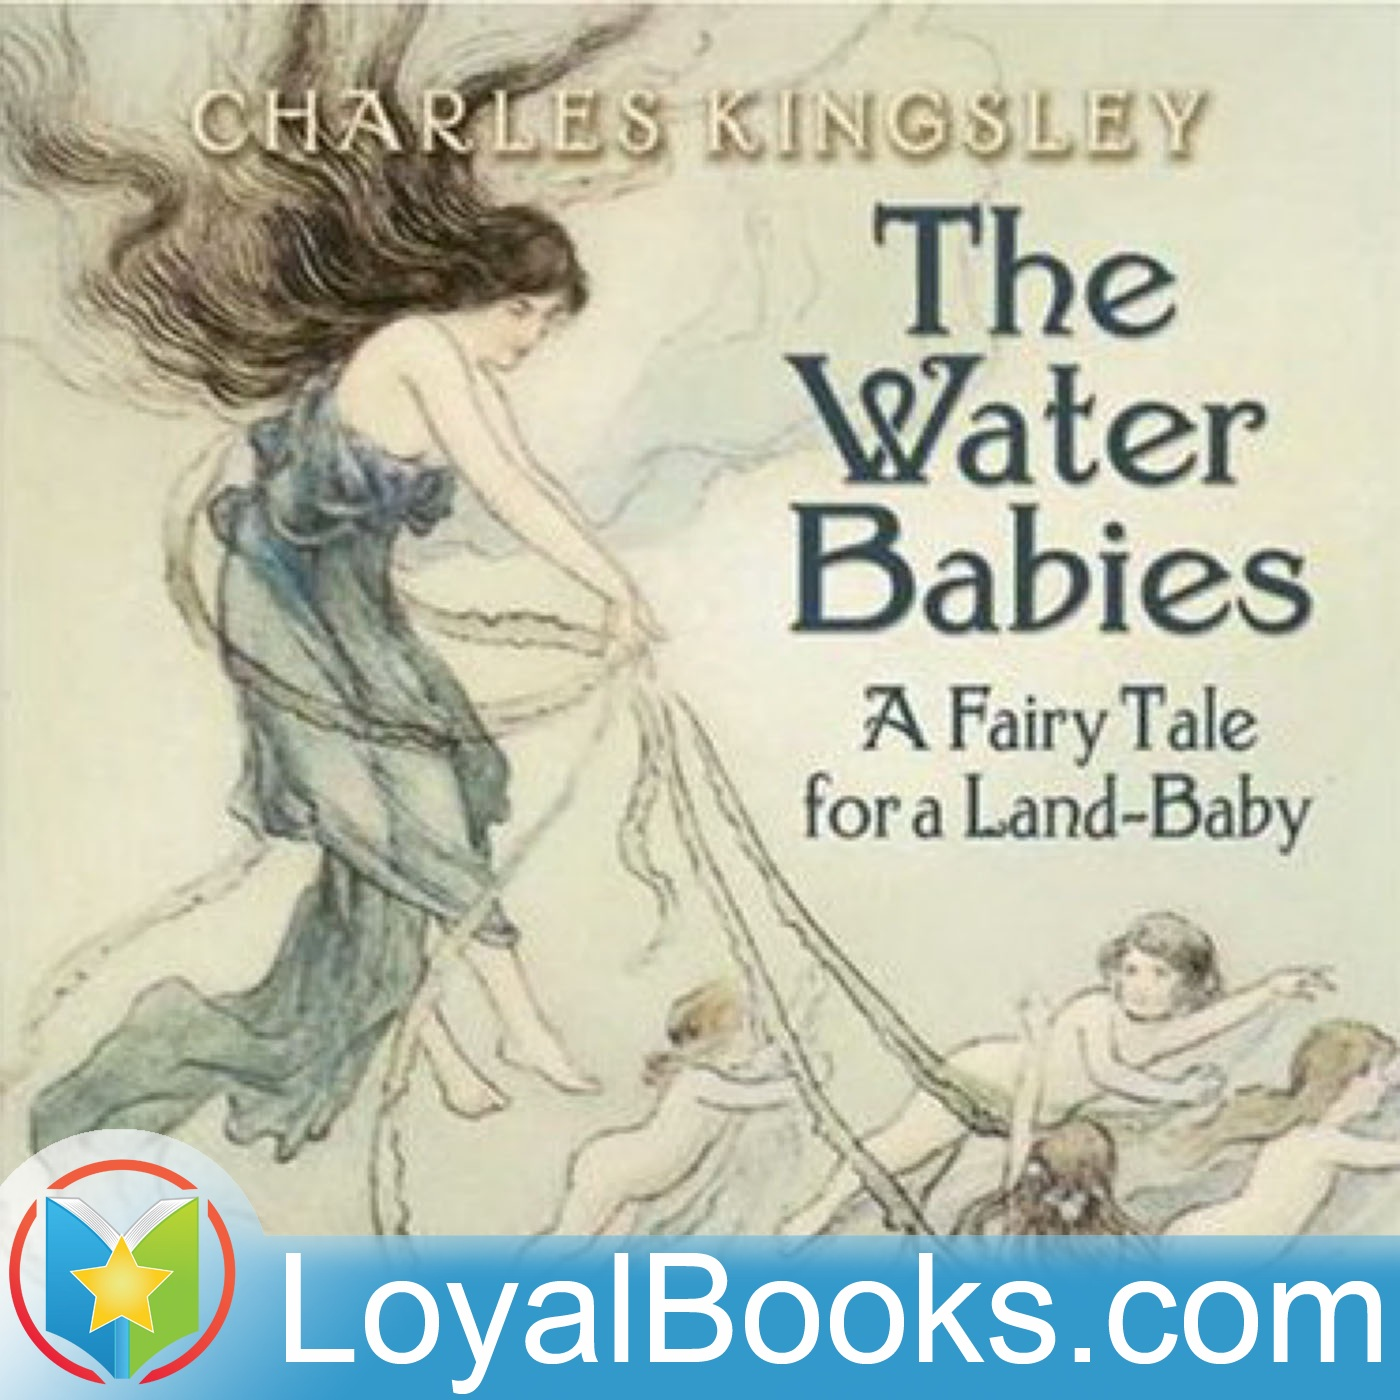 <![CDATA[The Water-Babies by Charles Kingsley]]>